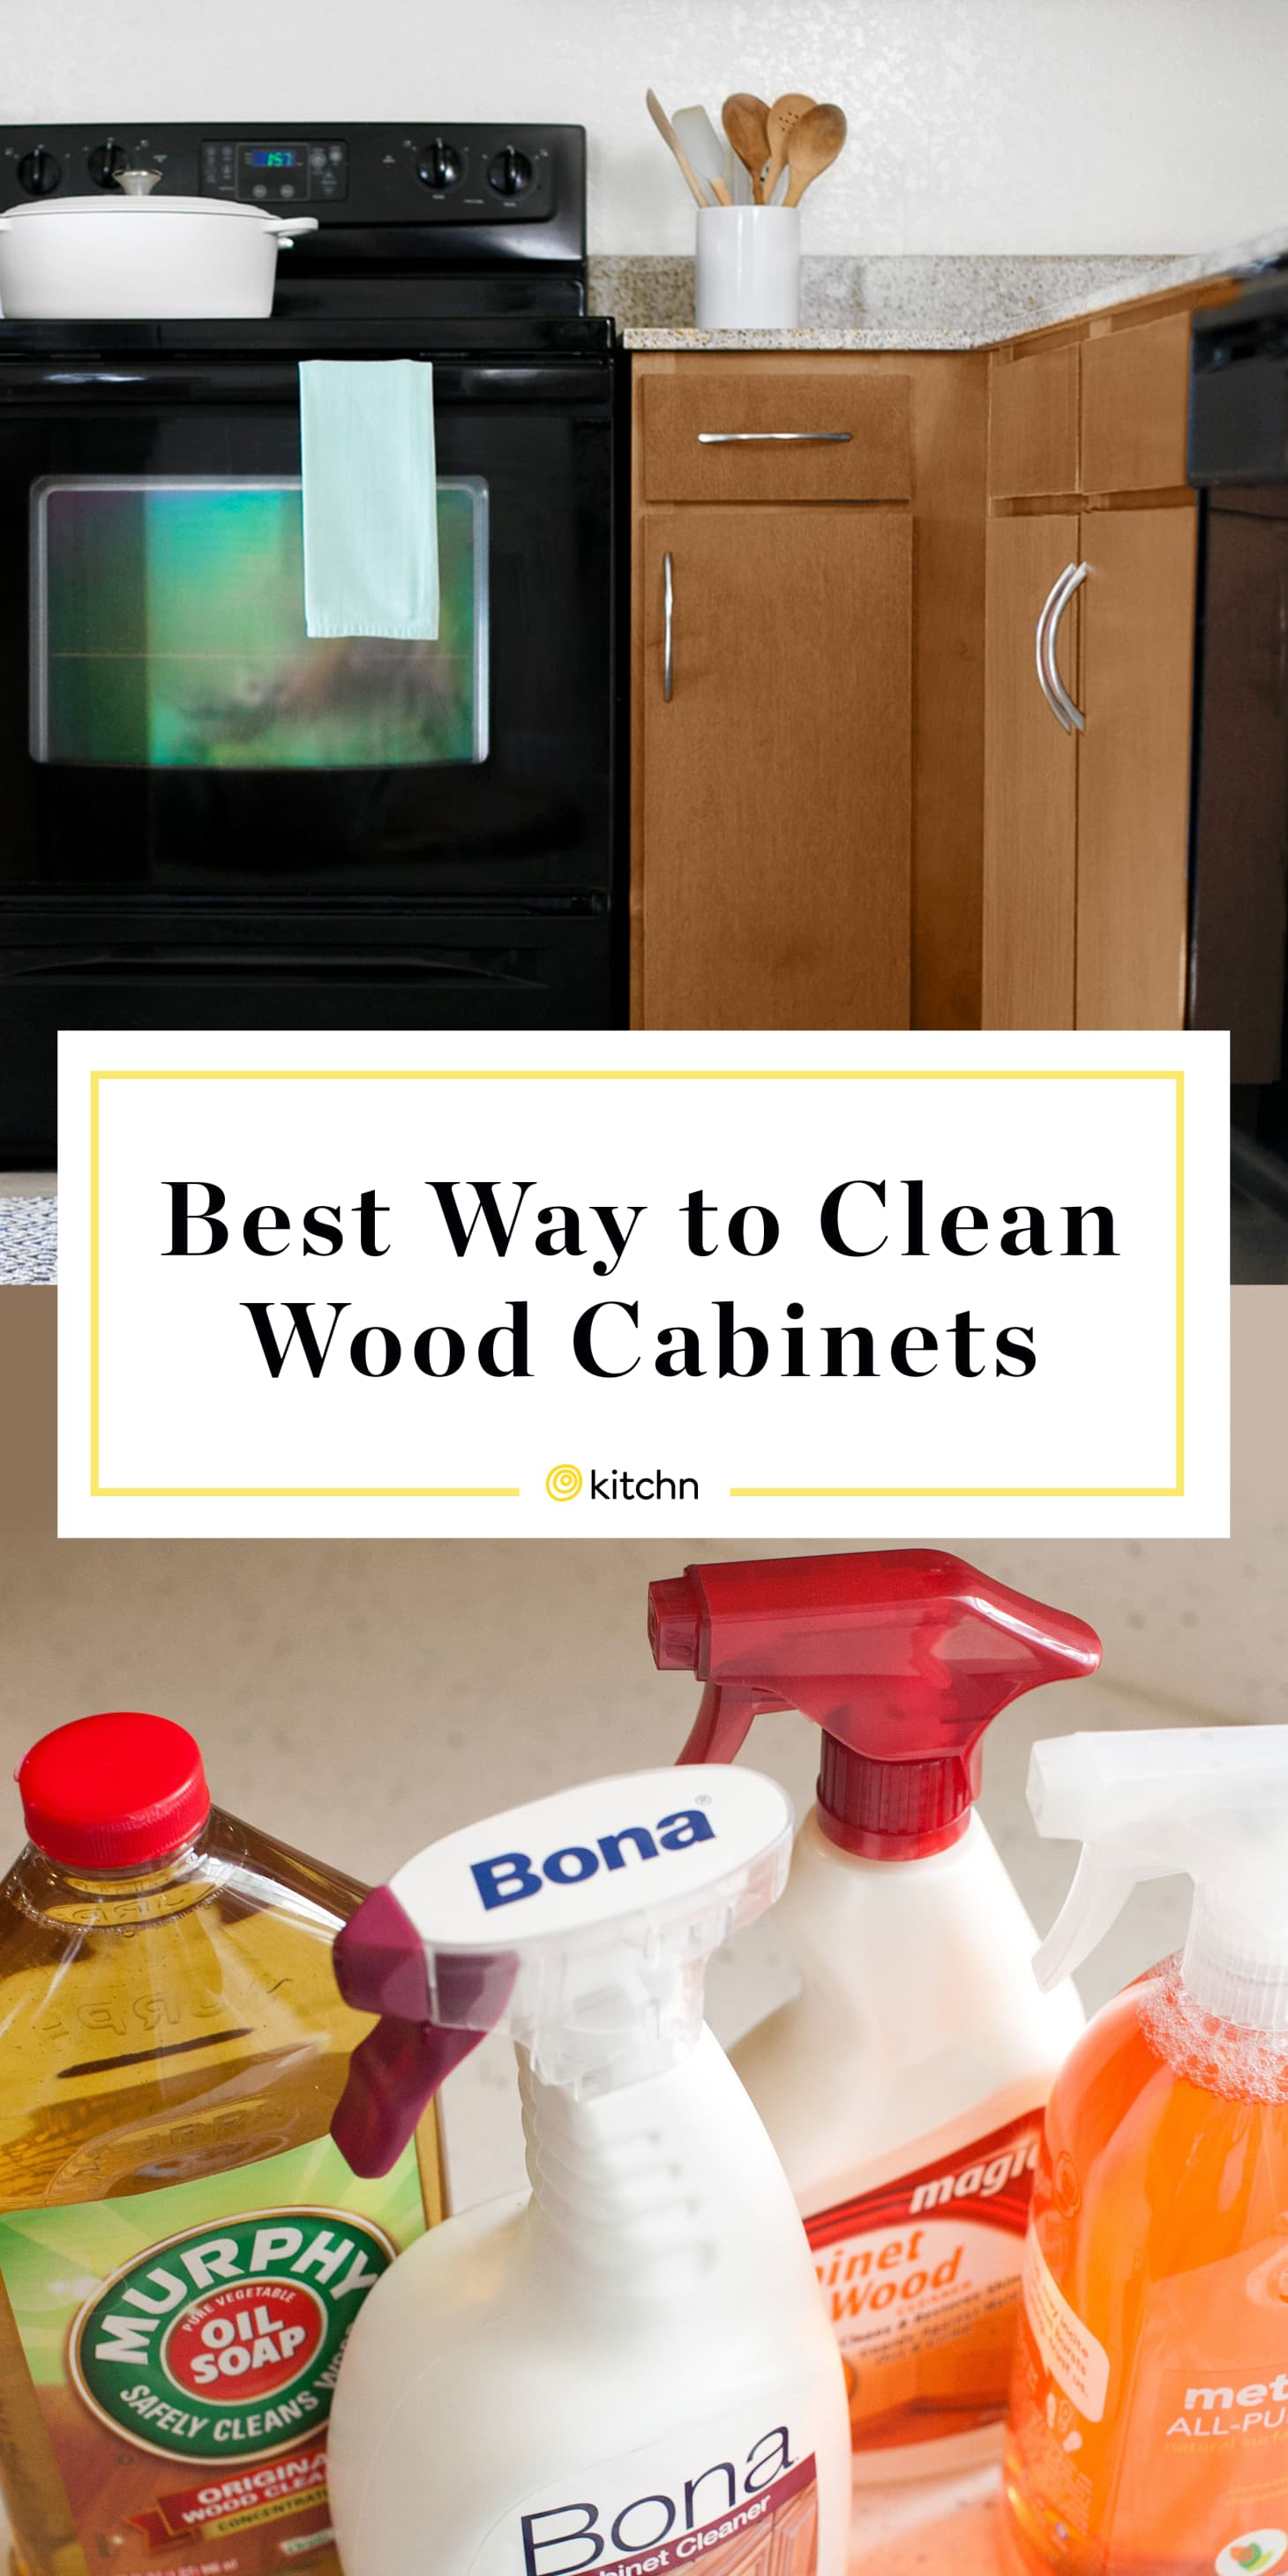 How To Clean Wood Cabinets   Kitchn